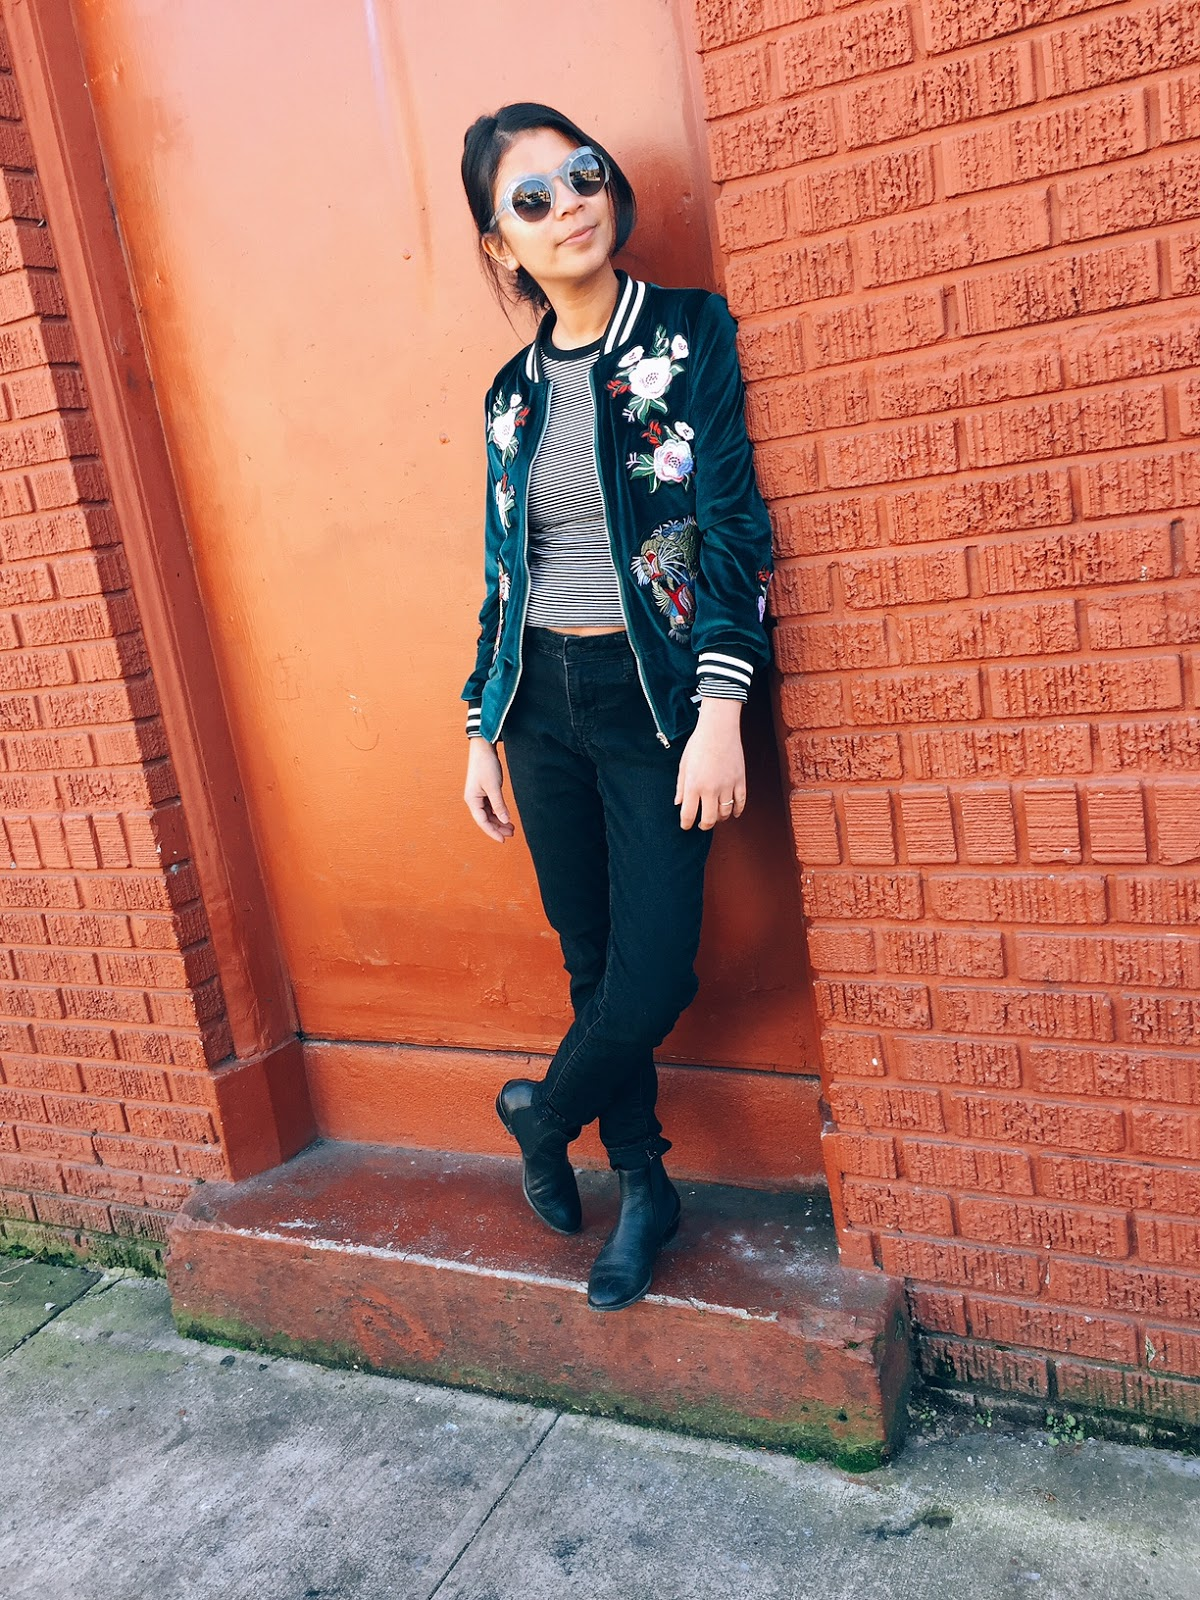 amazon find, black booties, black jeans, bomber jackets, embroidered, green jacket, outfit of the day, portland fashion blogger, velvet jacket,